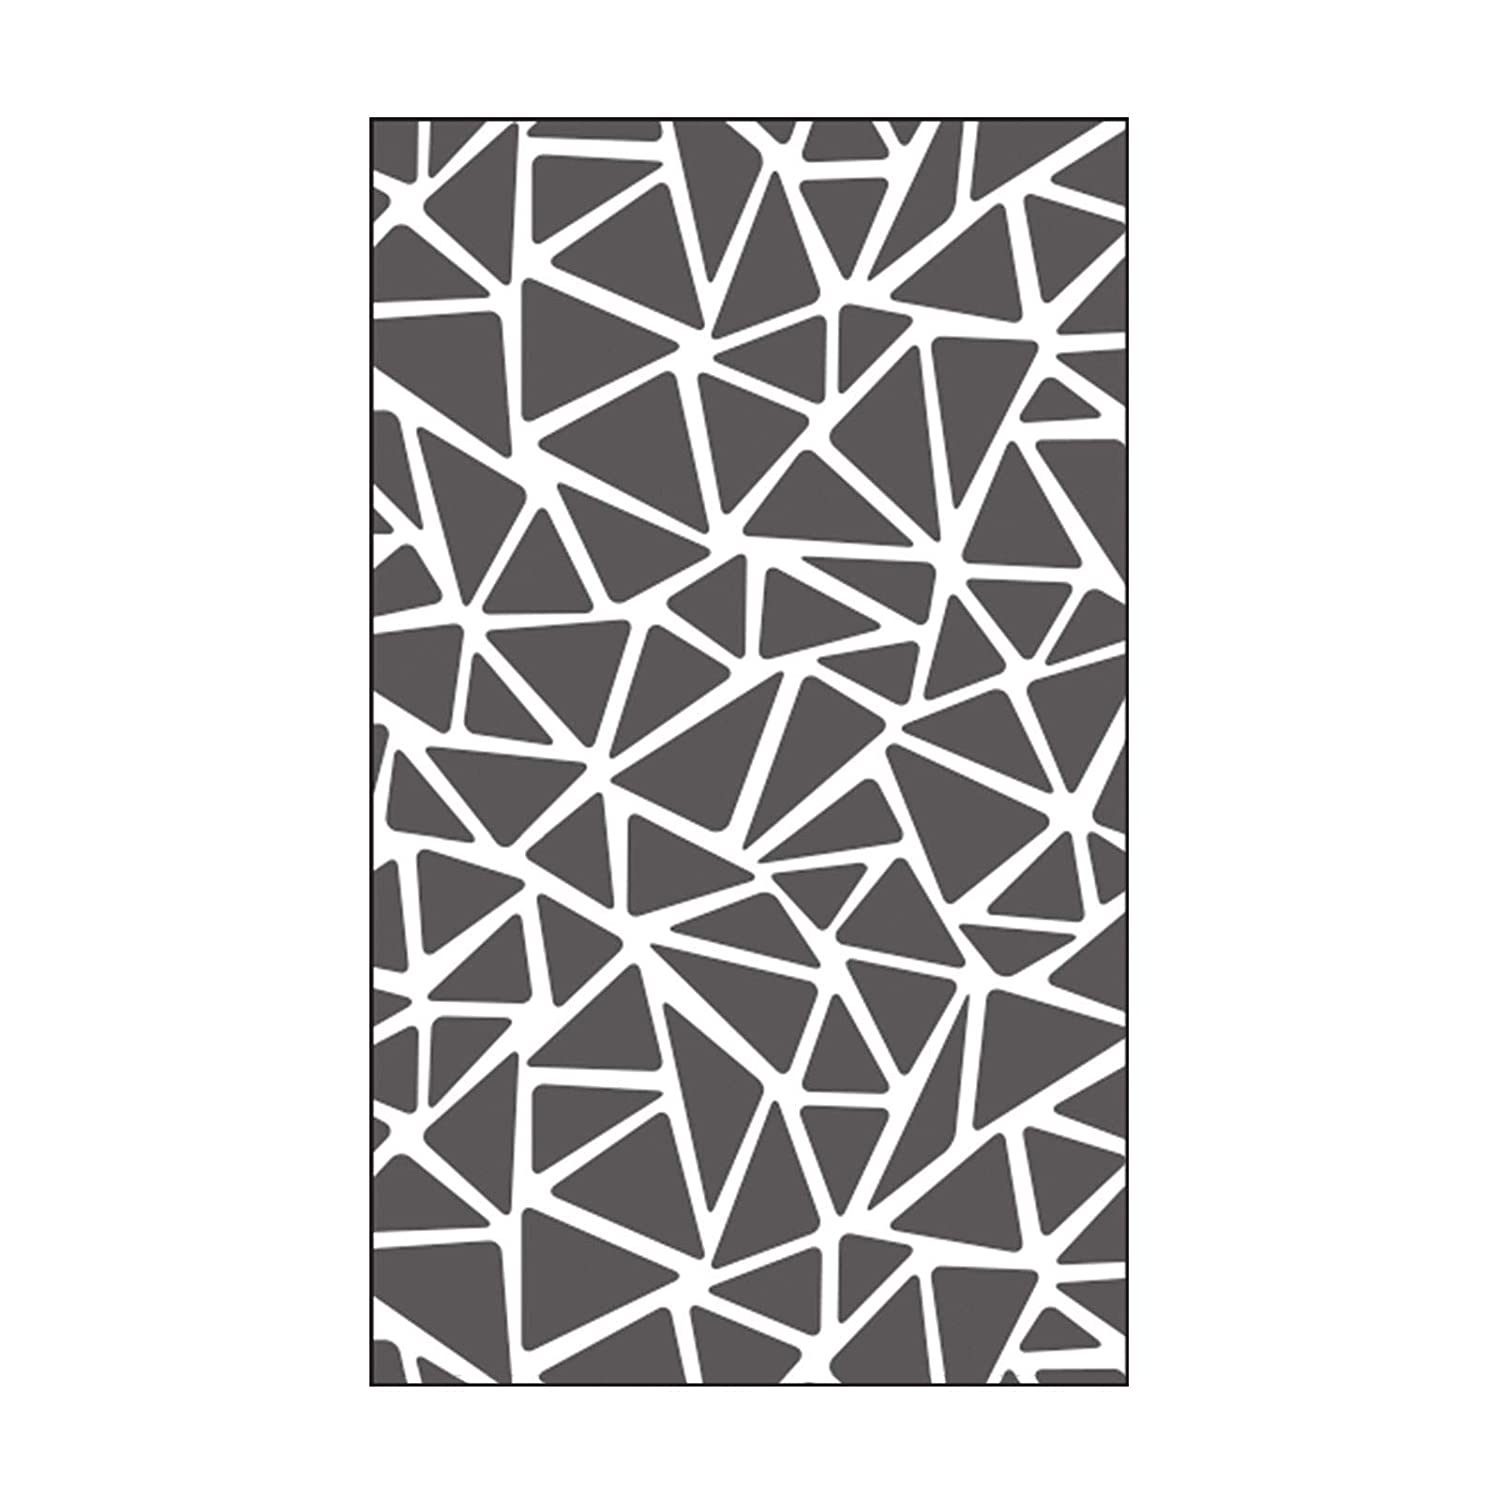 Vaessen Creative Mini Embossing Folder, Triangle, Adding Texture and Dimension to Scrapbook Pages, Cards and Other Papercraft Projects, 3 x 5 inches